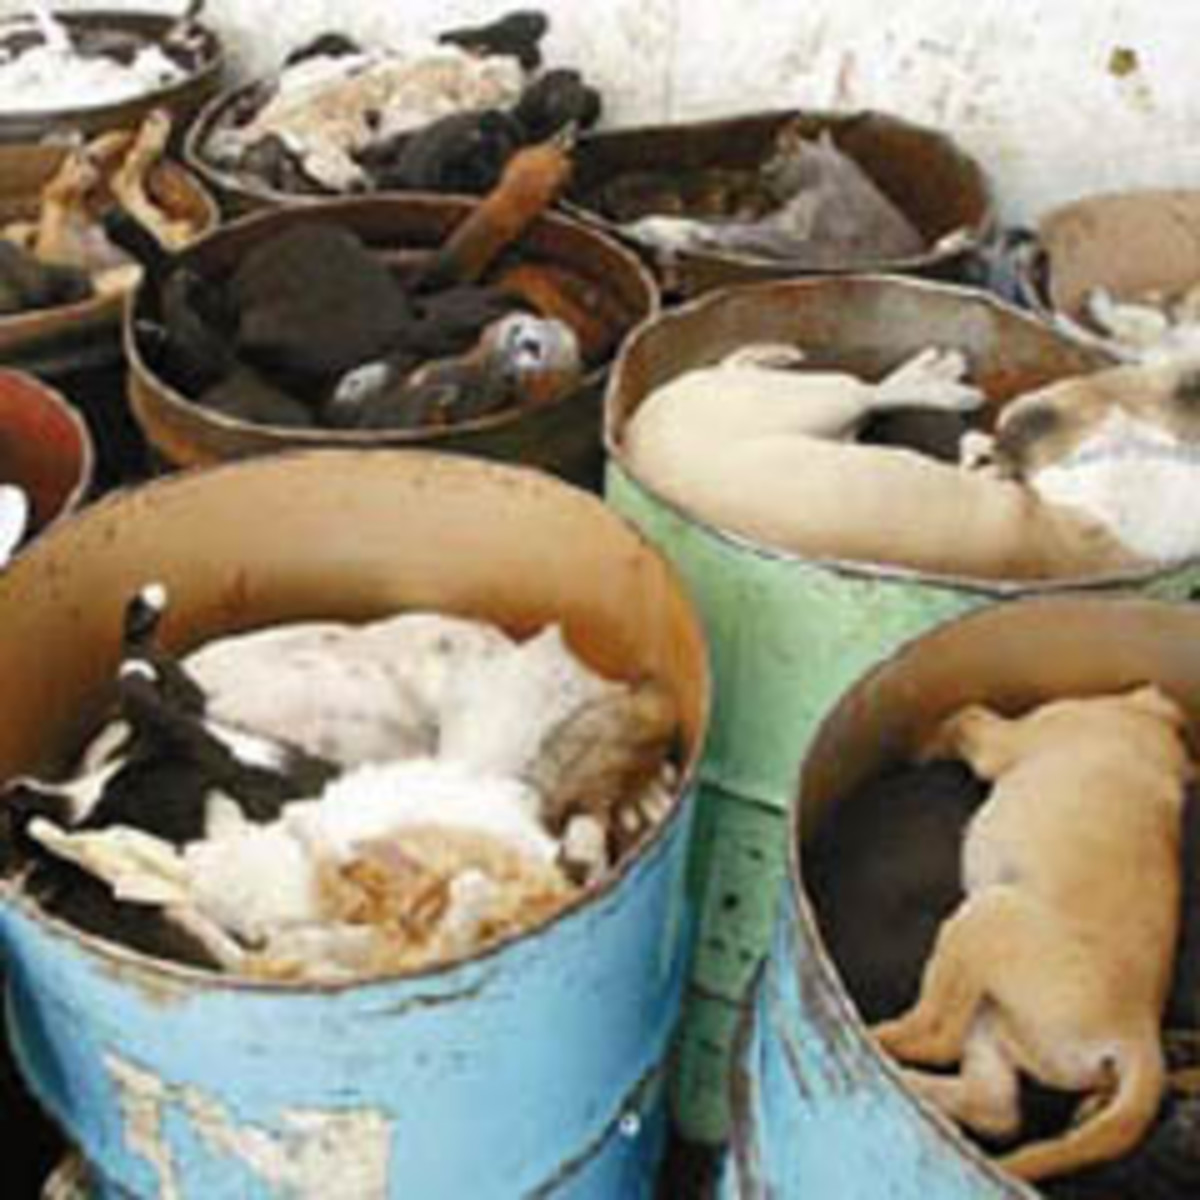 Piles of dogs and cats after being euthanized